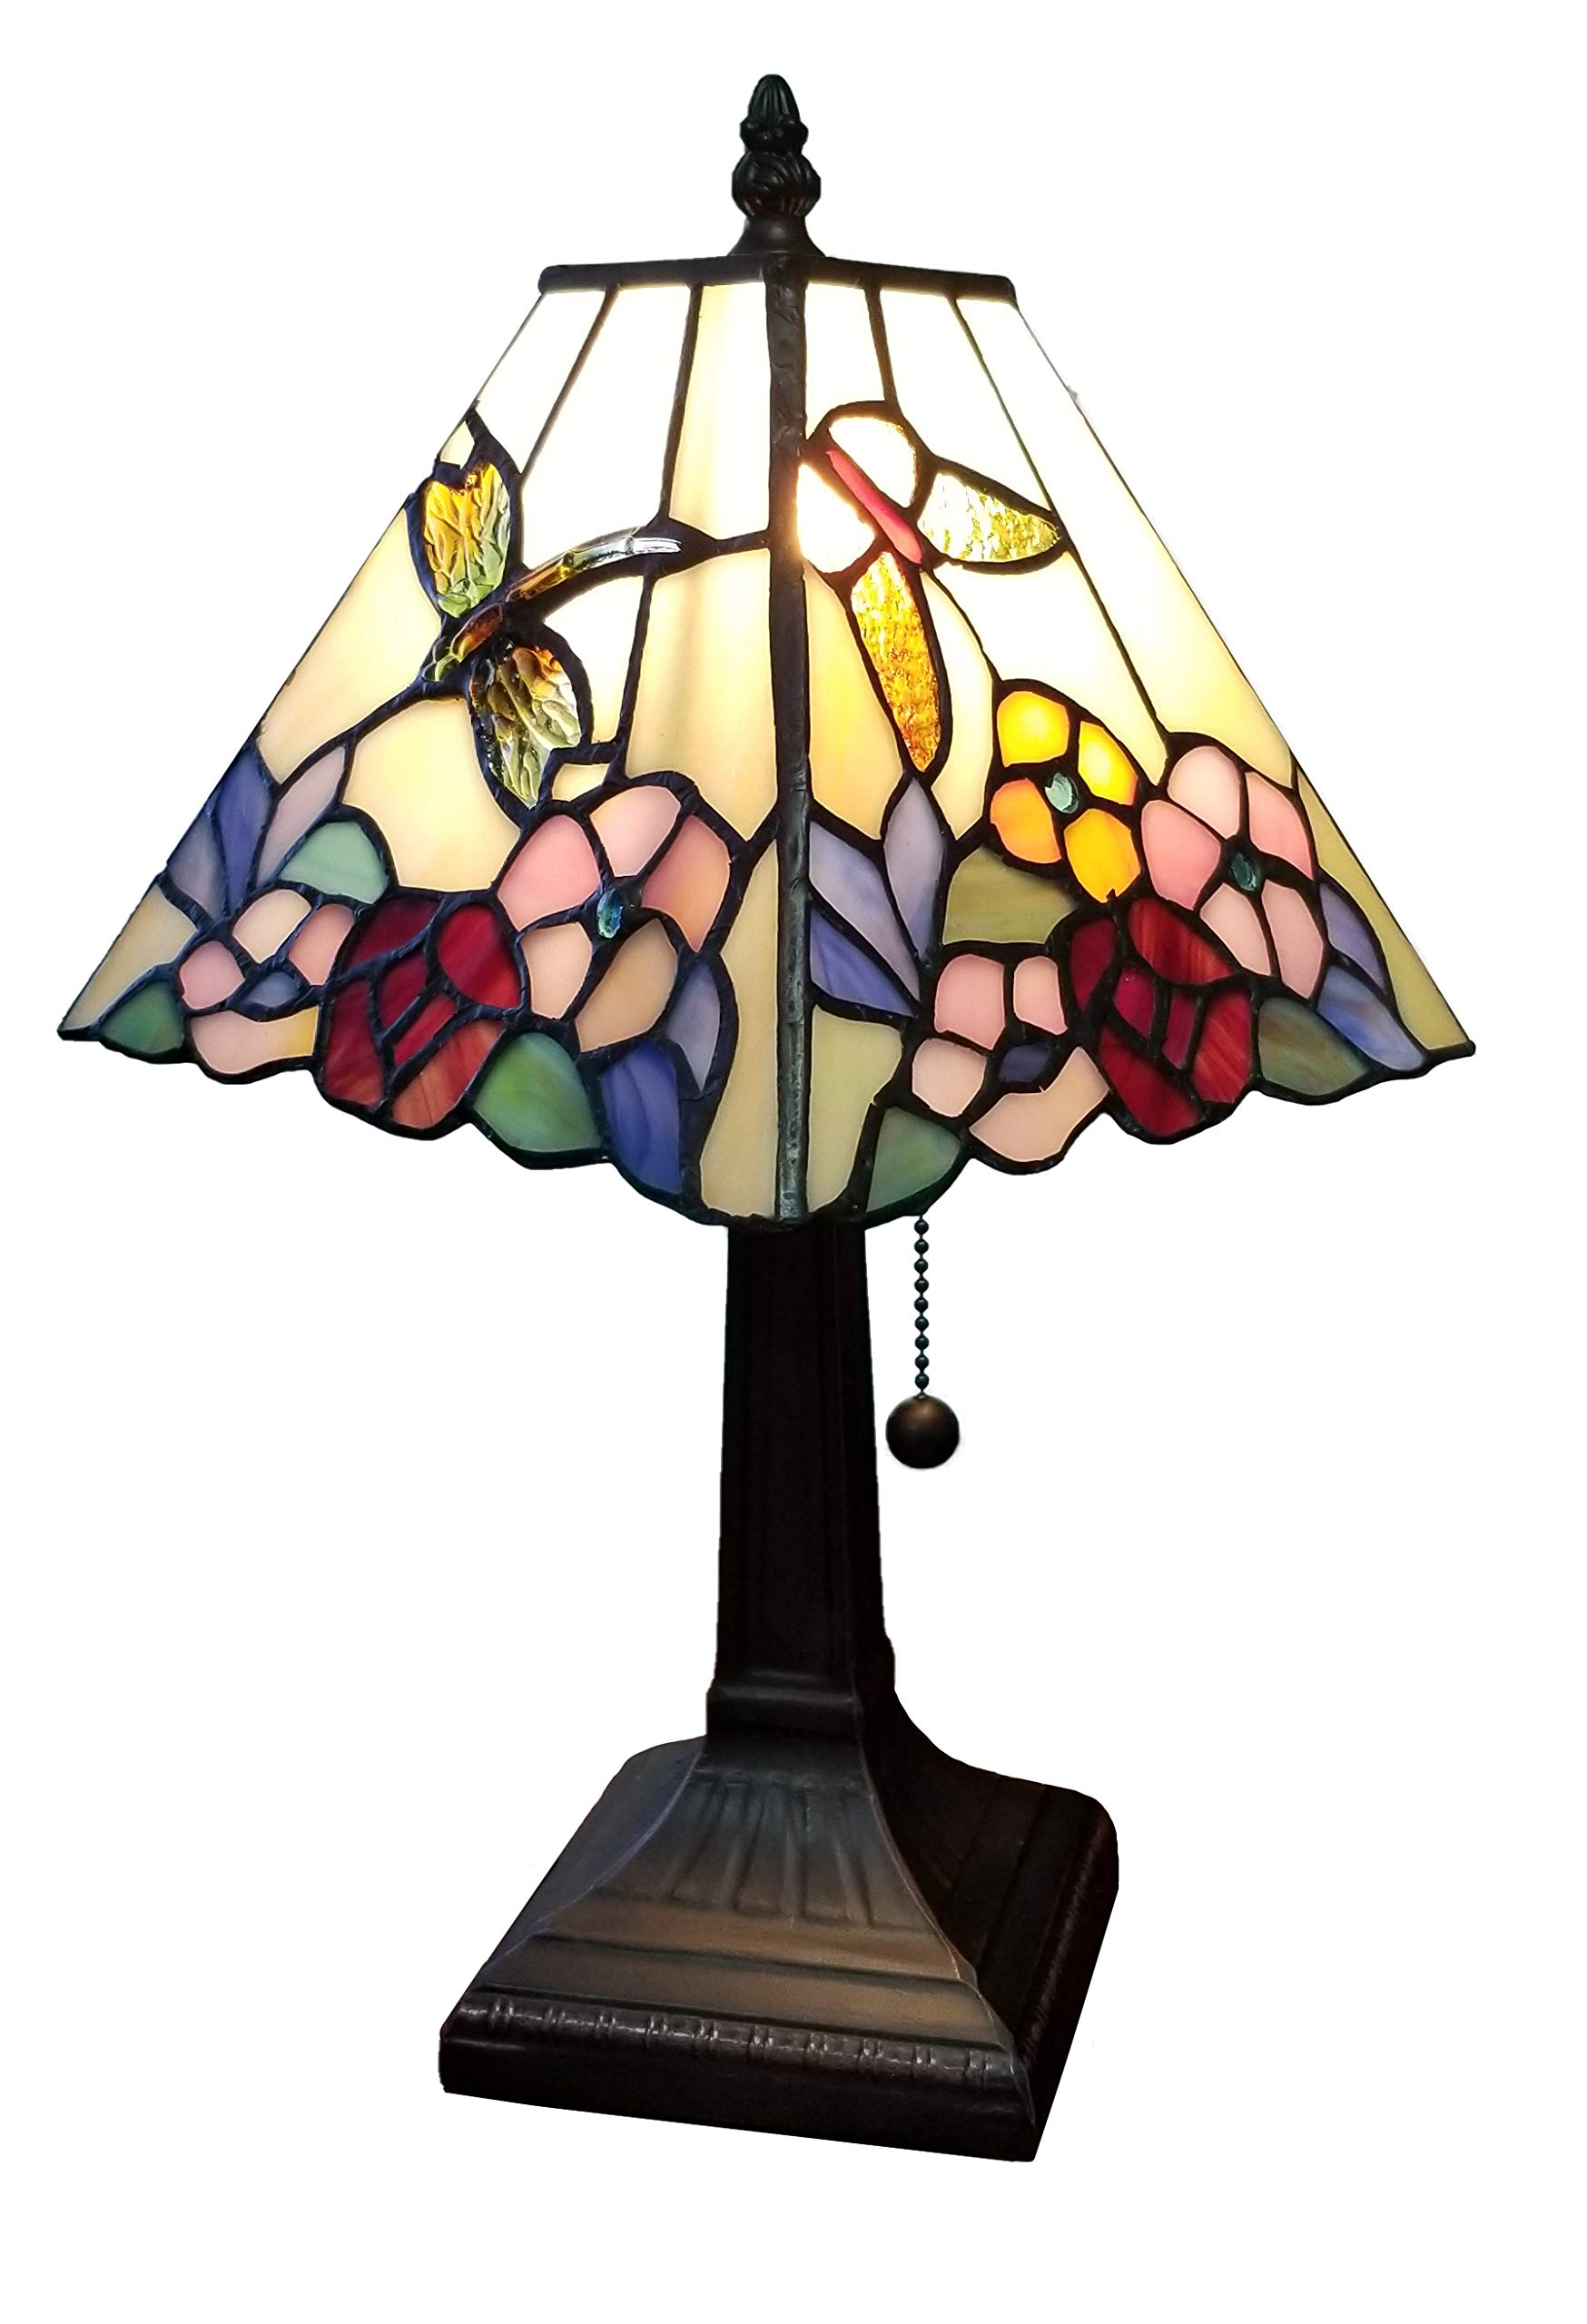 """Amora Lighting Tiffany Style Mini Accent Lamp Mission 15"""" Tall Stained Glass Red Floral Flower Hummingbird Butterfly Vintage Antique Light Décor Living Bedroom Handmade Gift AM248TL08B, Multicolor"""